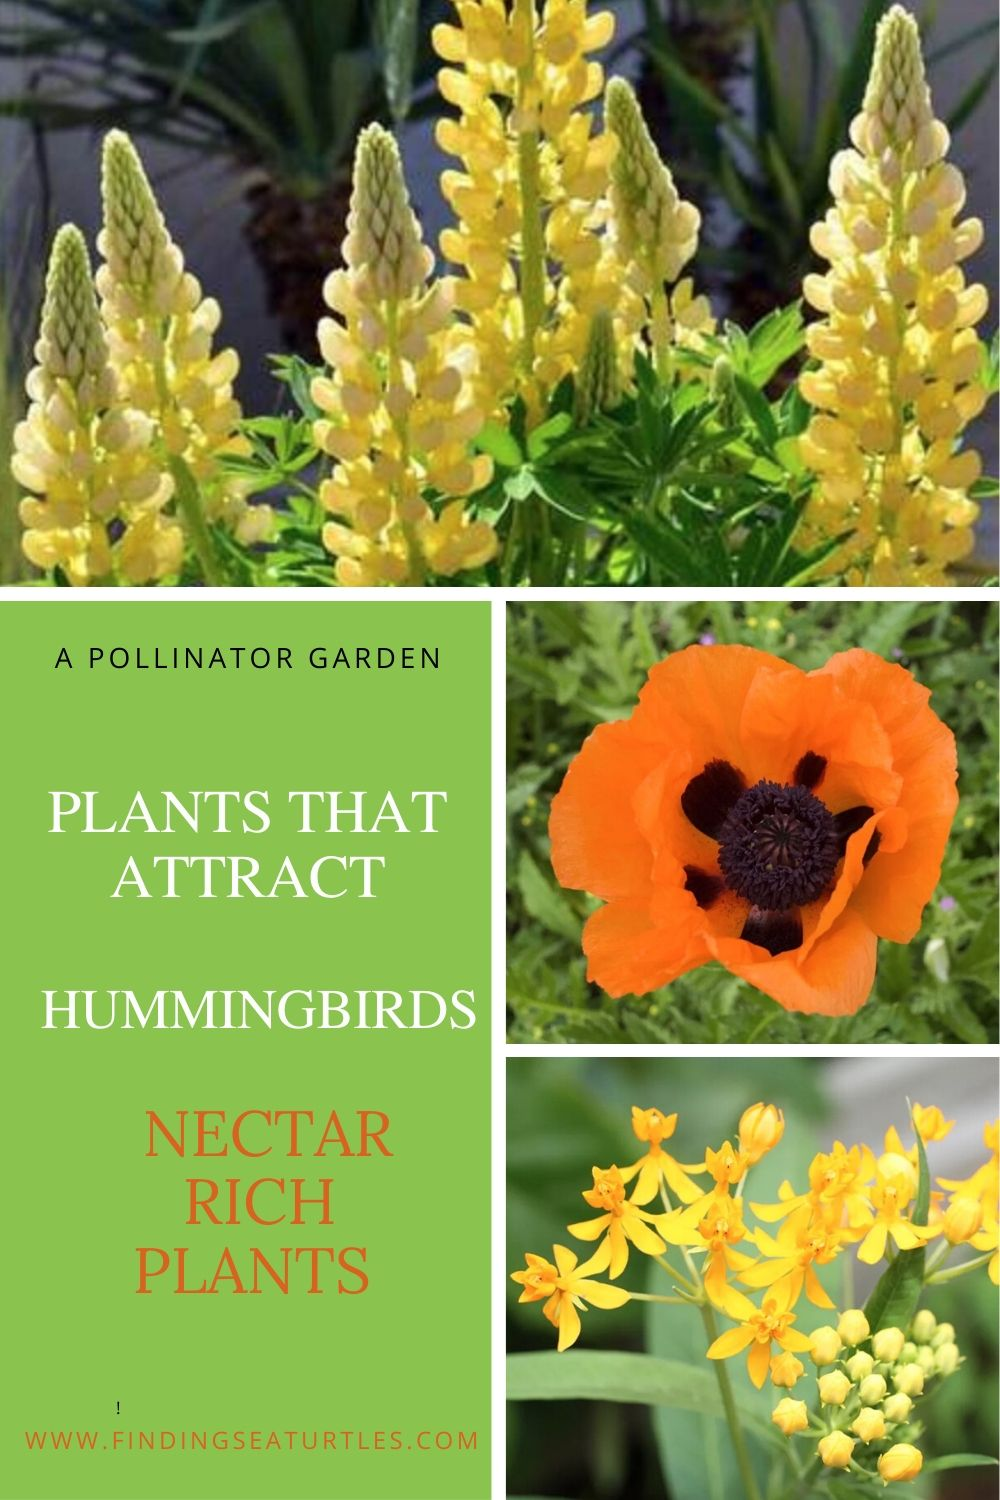 A Pollinator Garden Plants that Attract Hummingbirds #Hummingbirds #Garden #Gardening #Plants #GardenPollinators #AttractHummingbirds #NectarRichPlants #BeneficialForPollinators